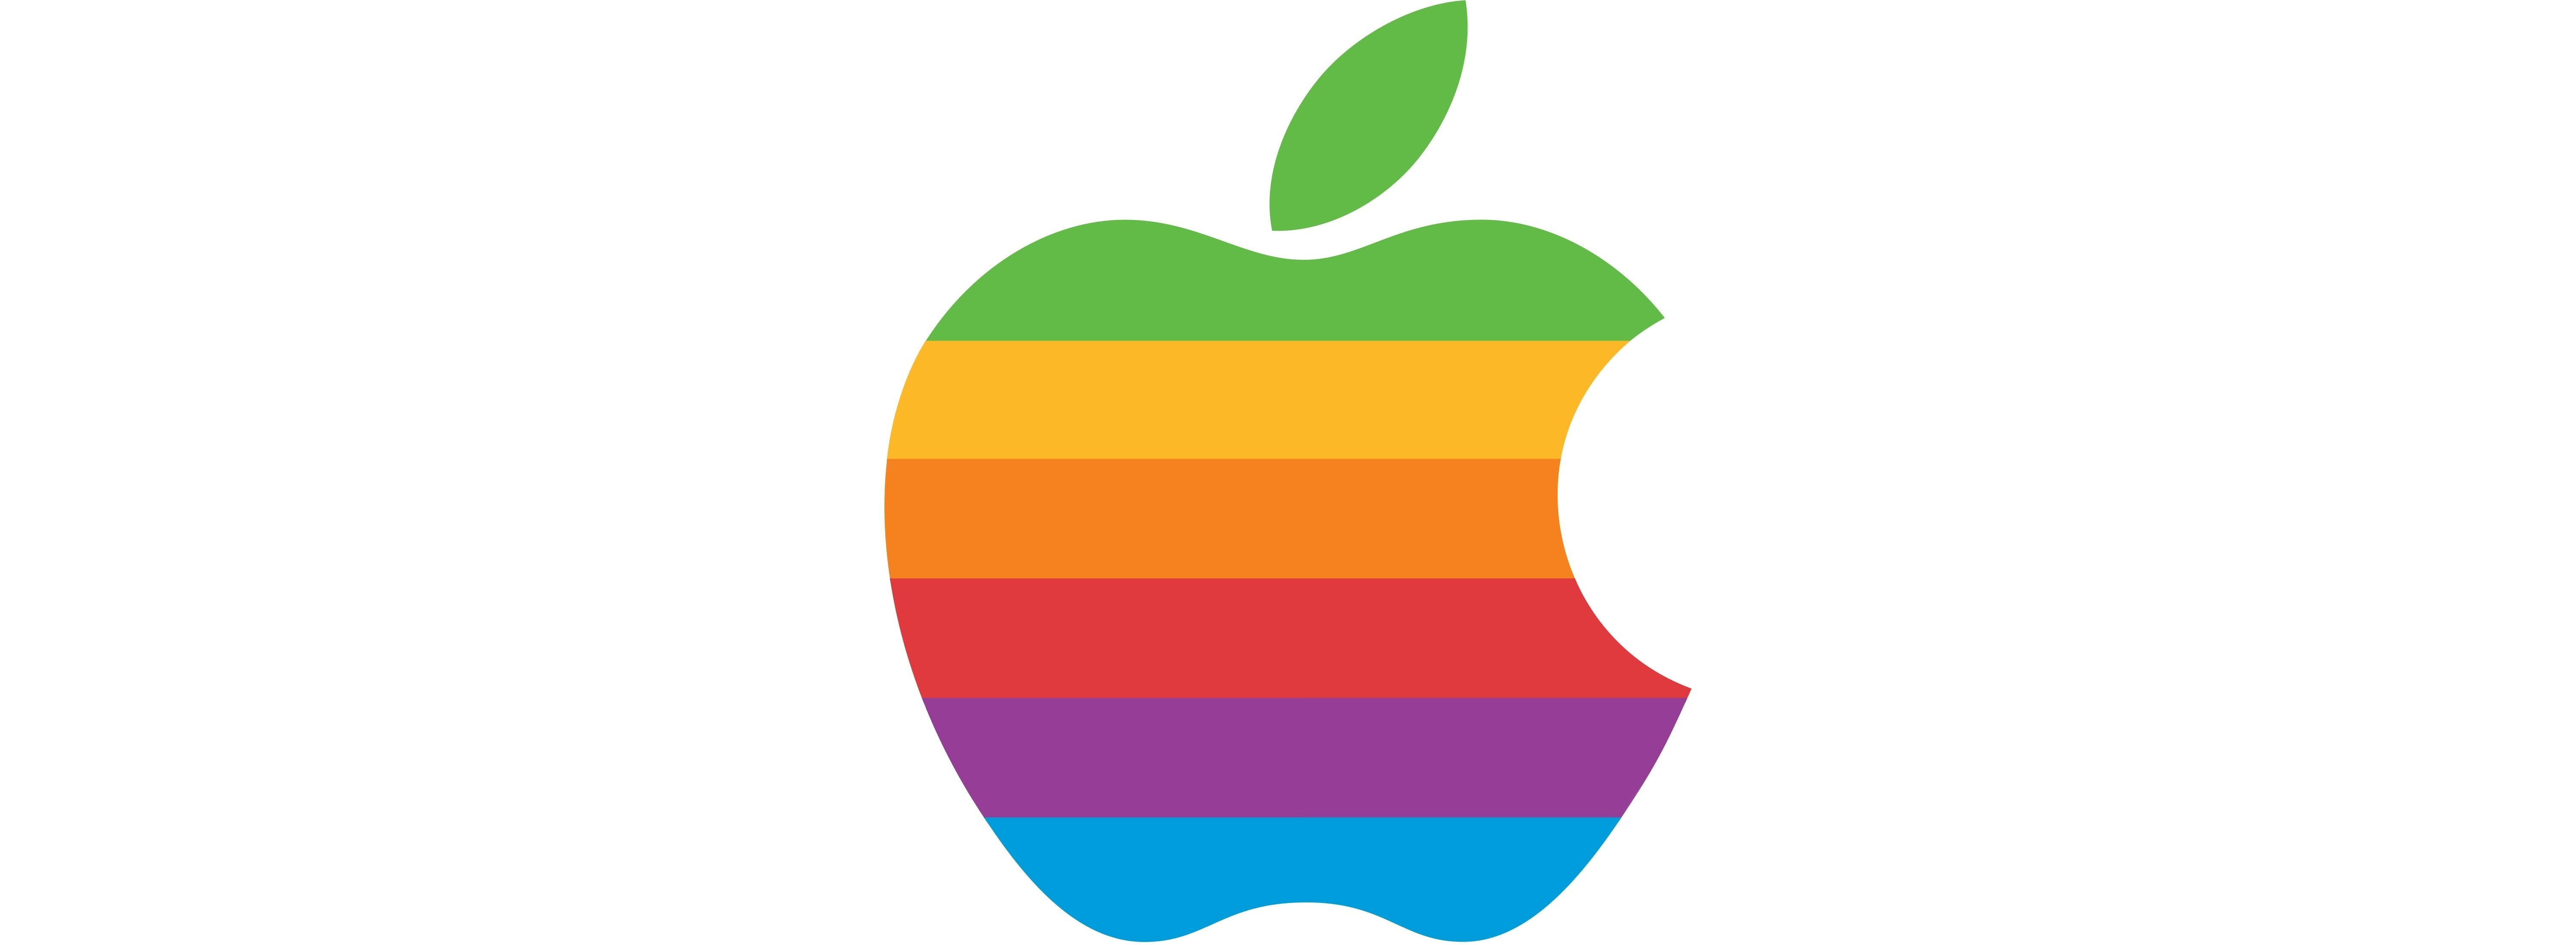 Apple shape of letter a clipart banner library library Apple's First 40 Years: Inspiring New Generations to Create – MacStories banner library library